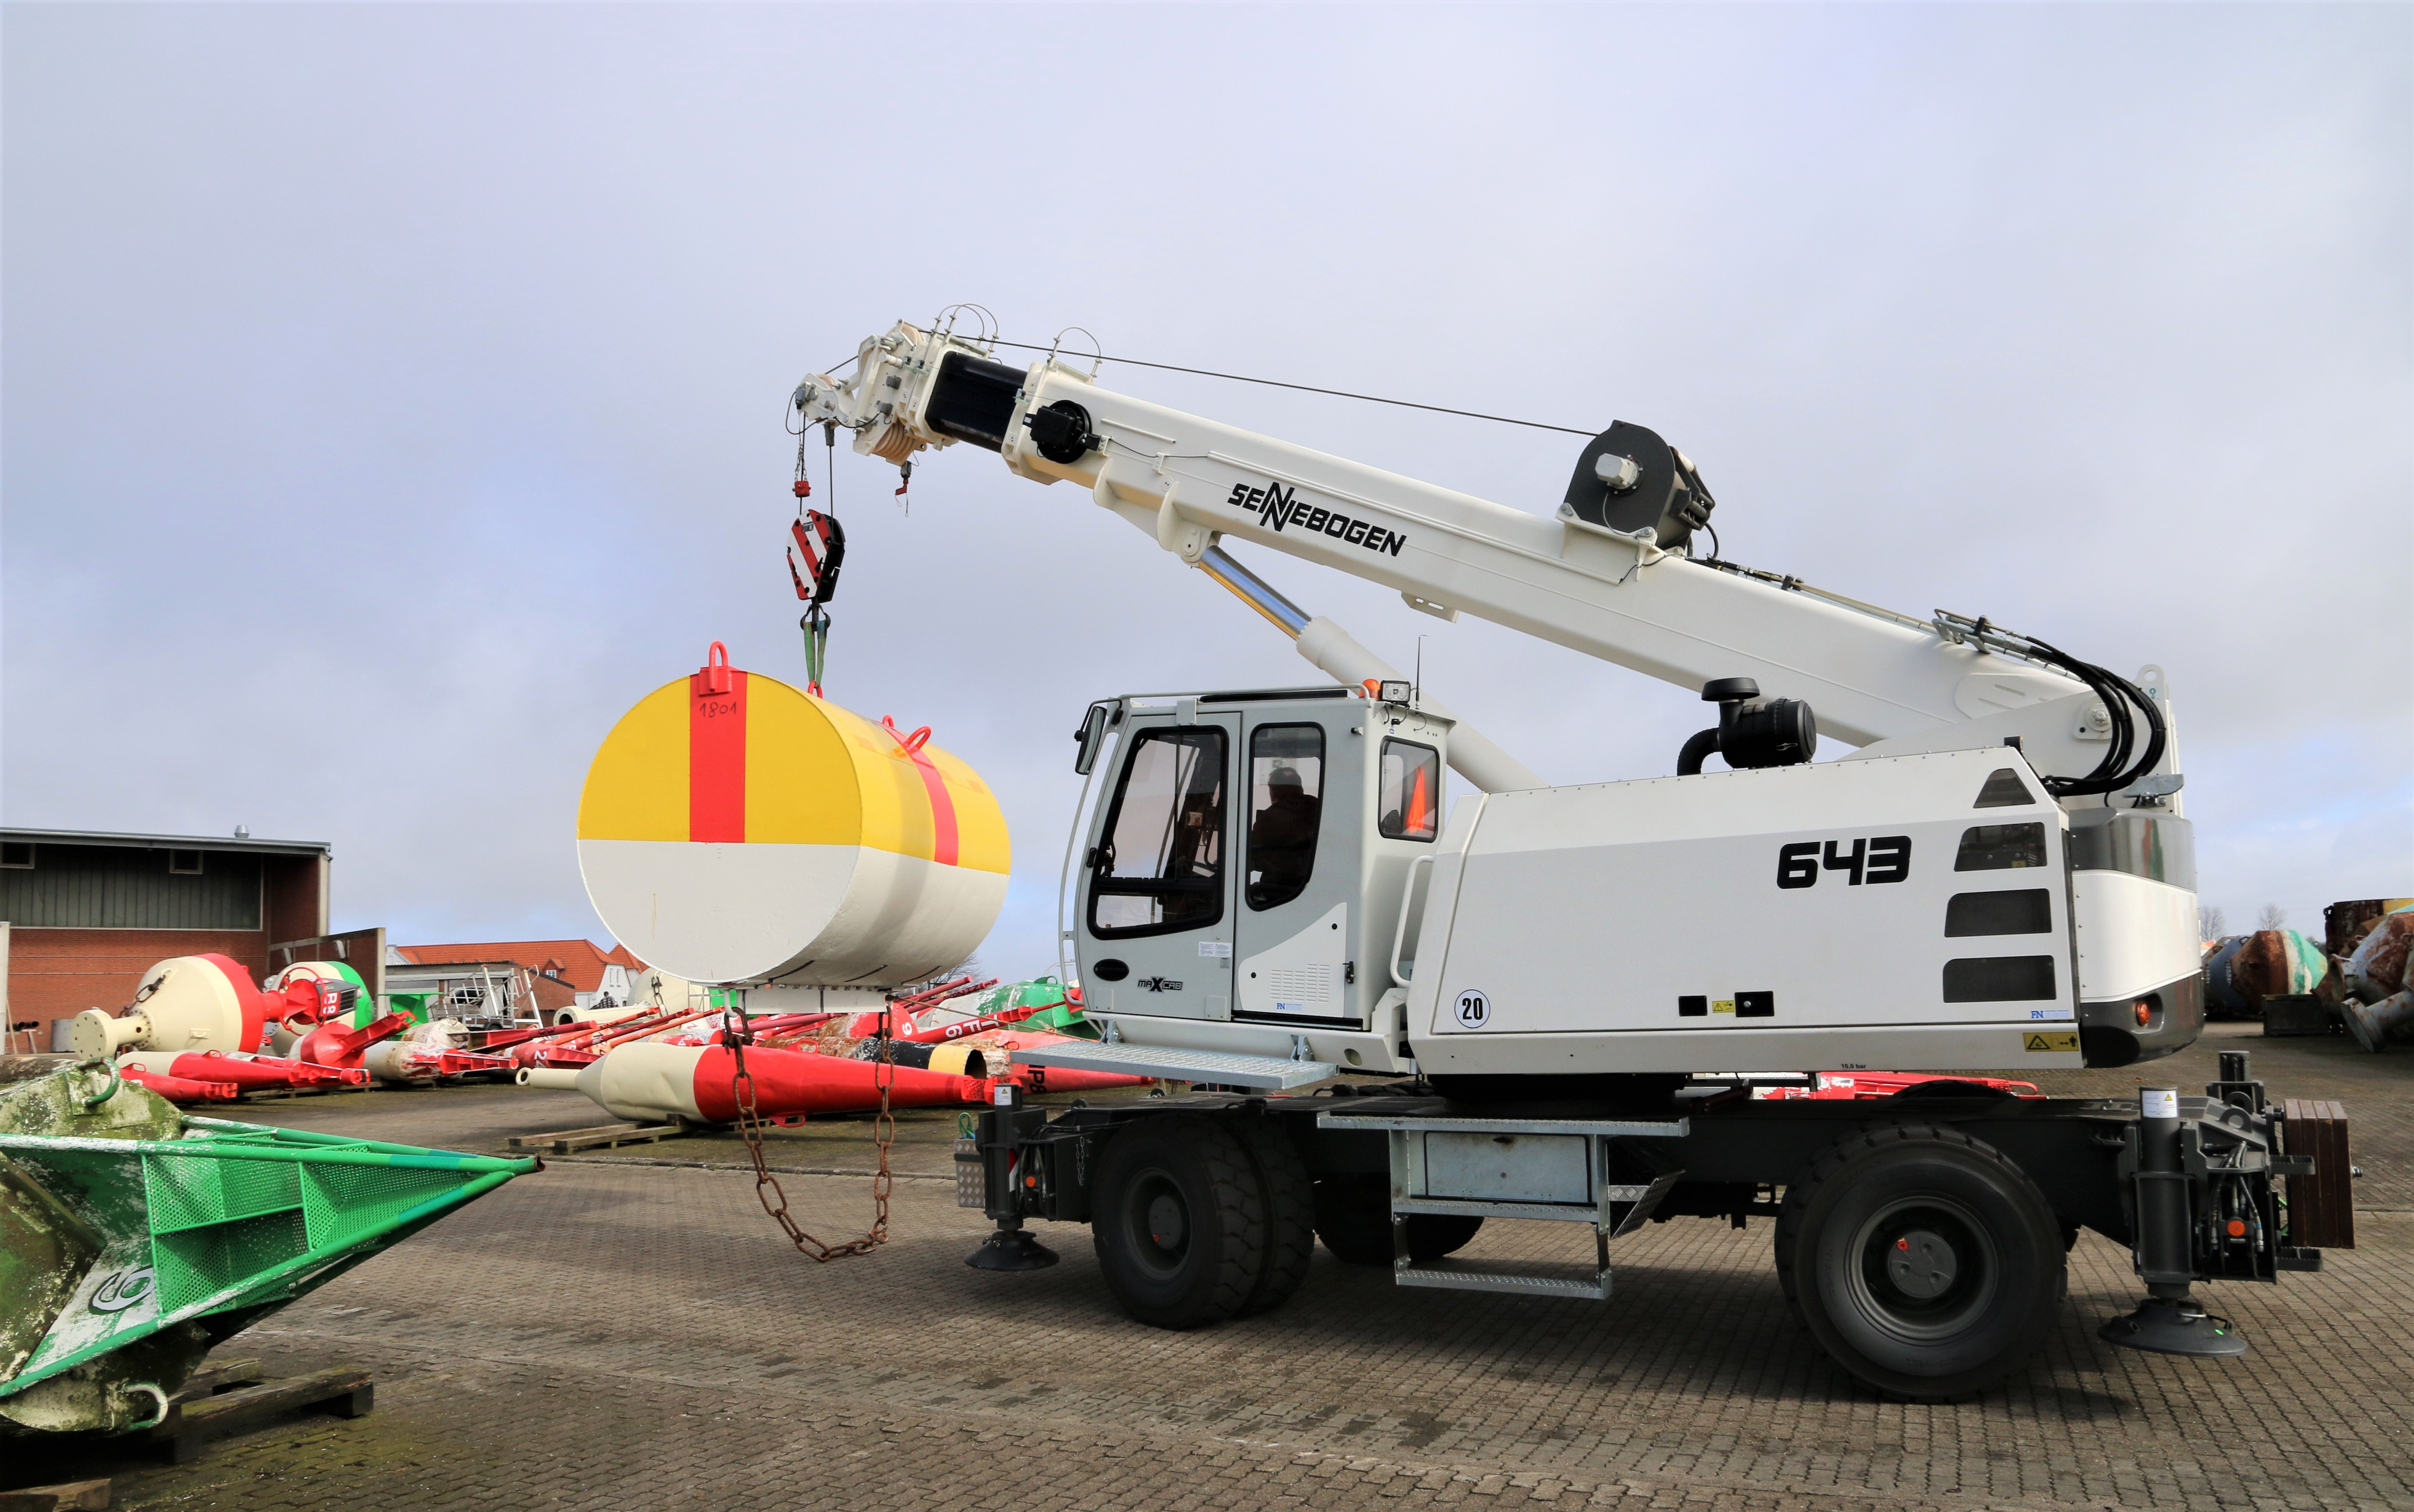 With a load capacity of 40 tons, the 643 telescopic crane always has enough reserve for handling the navigation aids, which weigh up to 6 tons – at the same time, the compactness of the machine is important for driving into the narrow and fully storage areas.